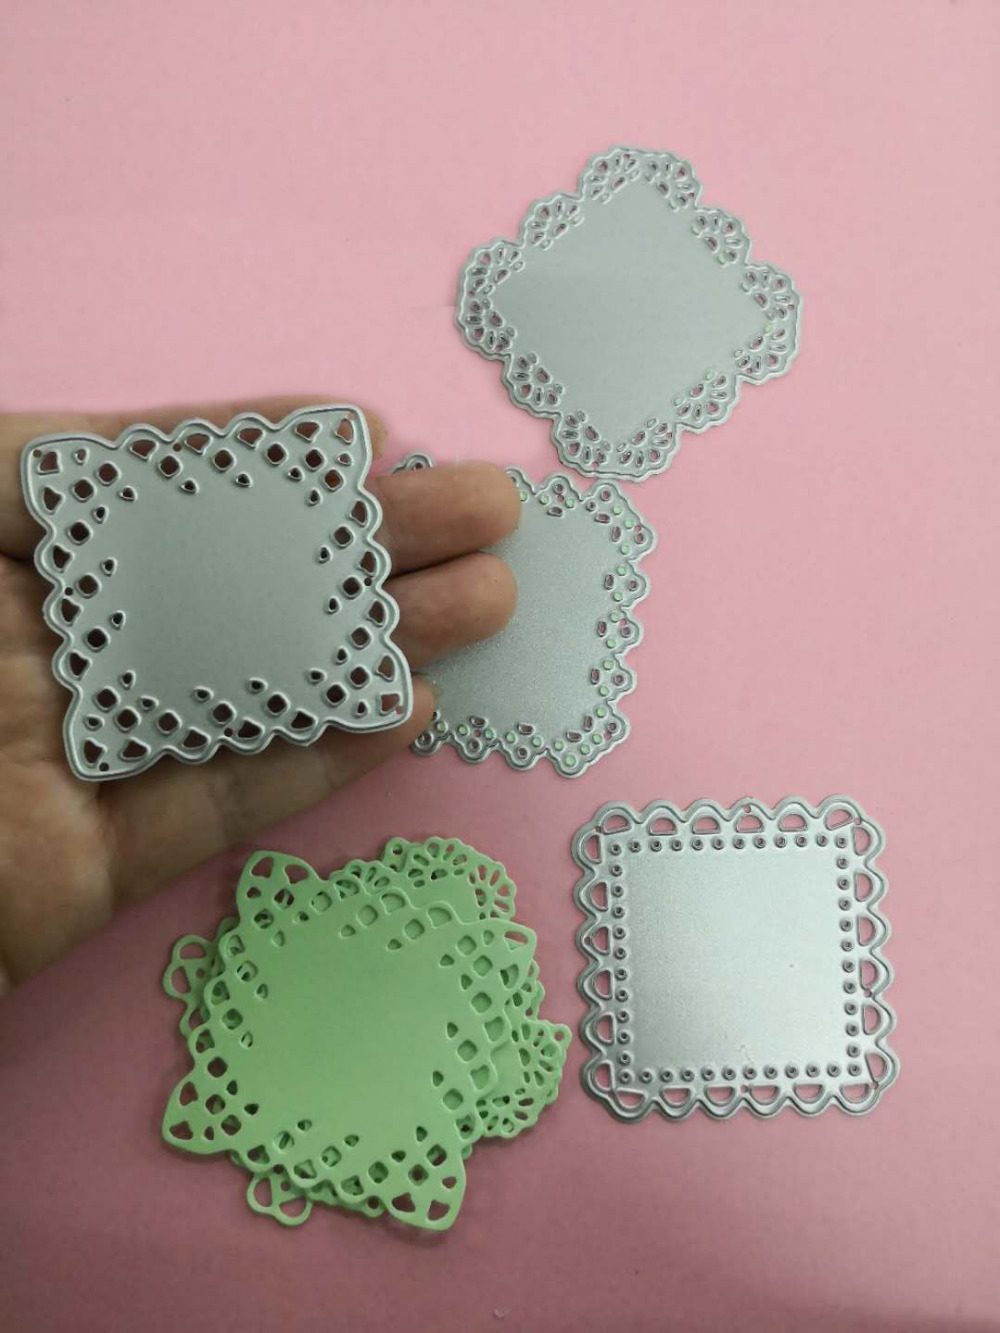 4Pcs Mini Doily Square Die For 2019 Valentines Day Metal Cutting Dies Scrapbooking Craft cut Card making diy 50*50mm